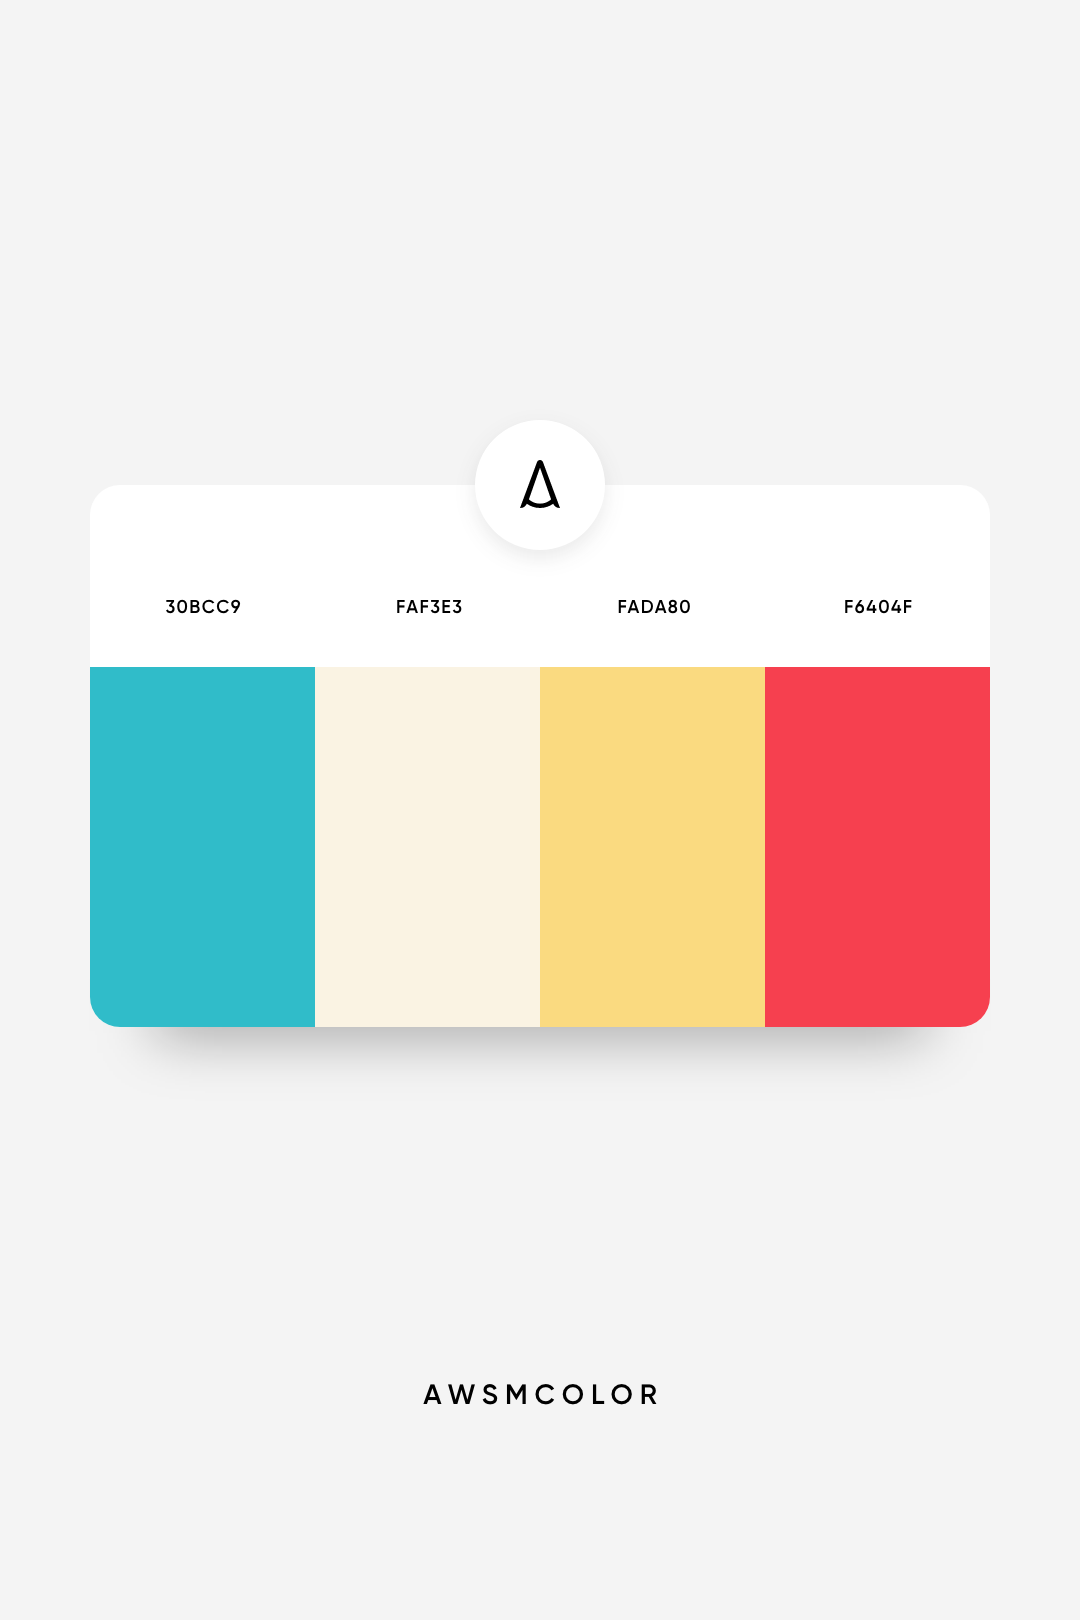 Awesome Color Palette No 287 By Awsmcolor Web Design Color Color Palette Design Brand Colors Inspiration